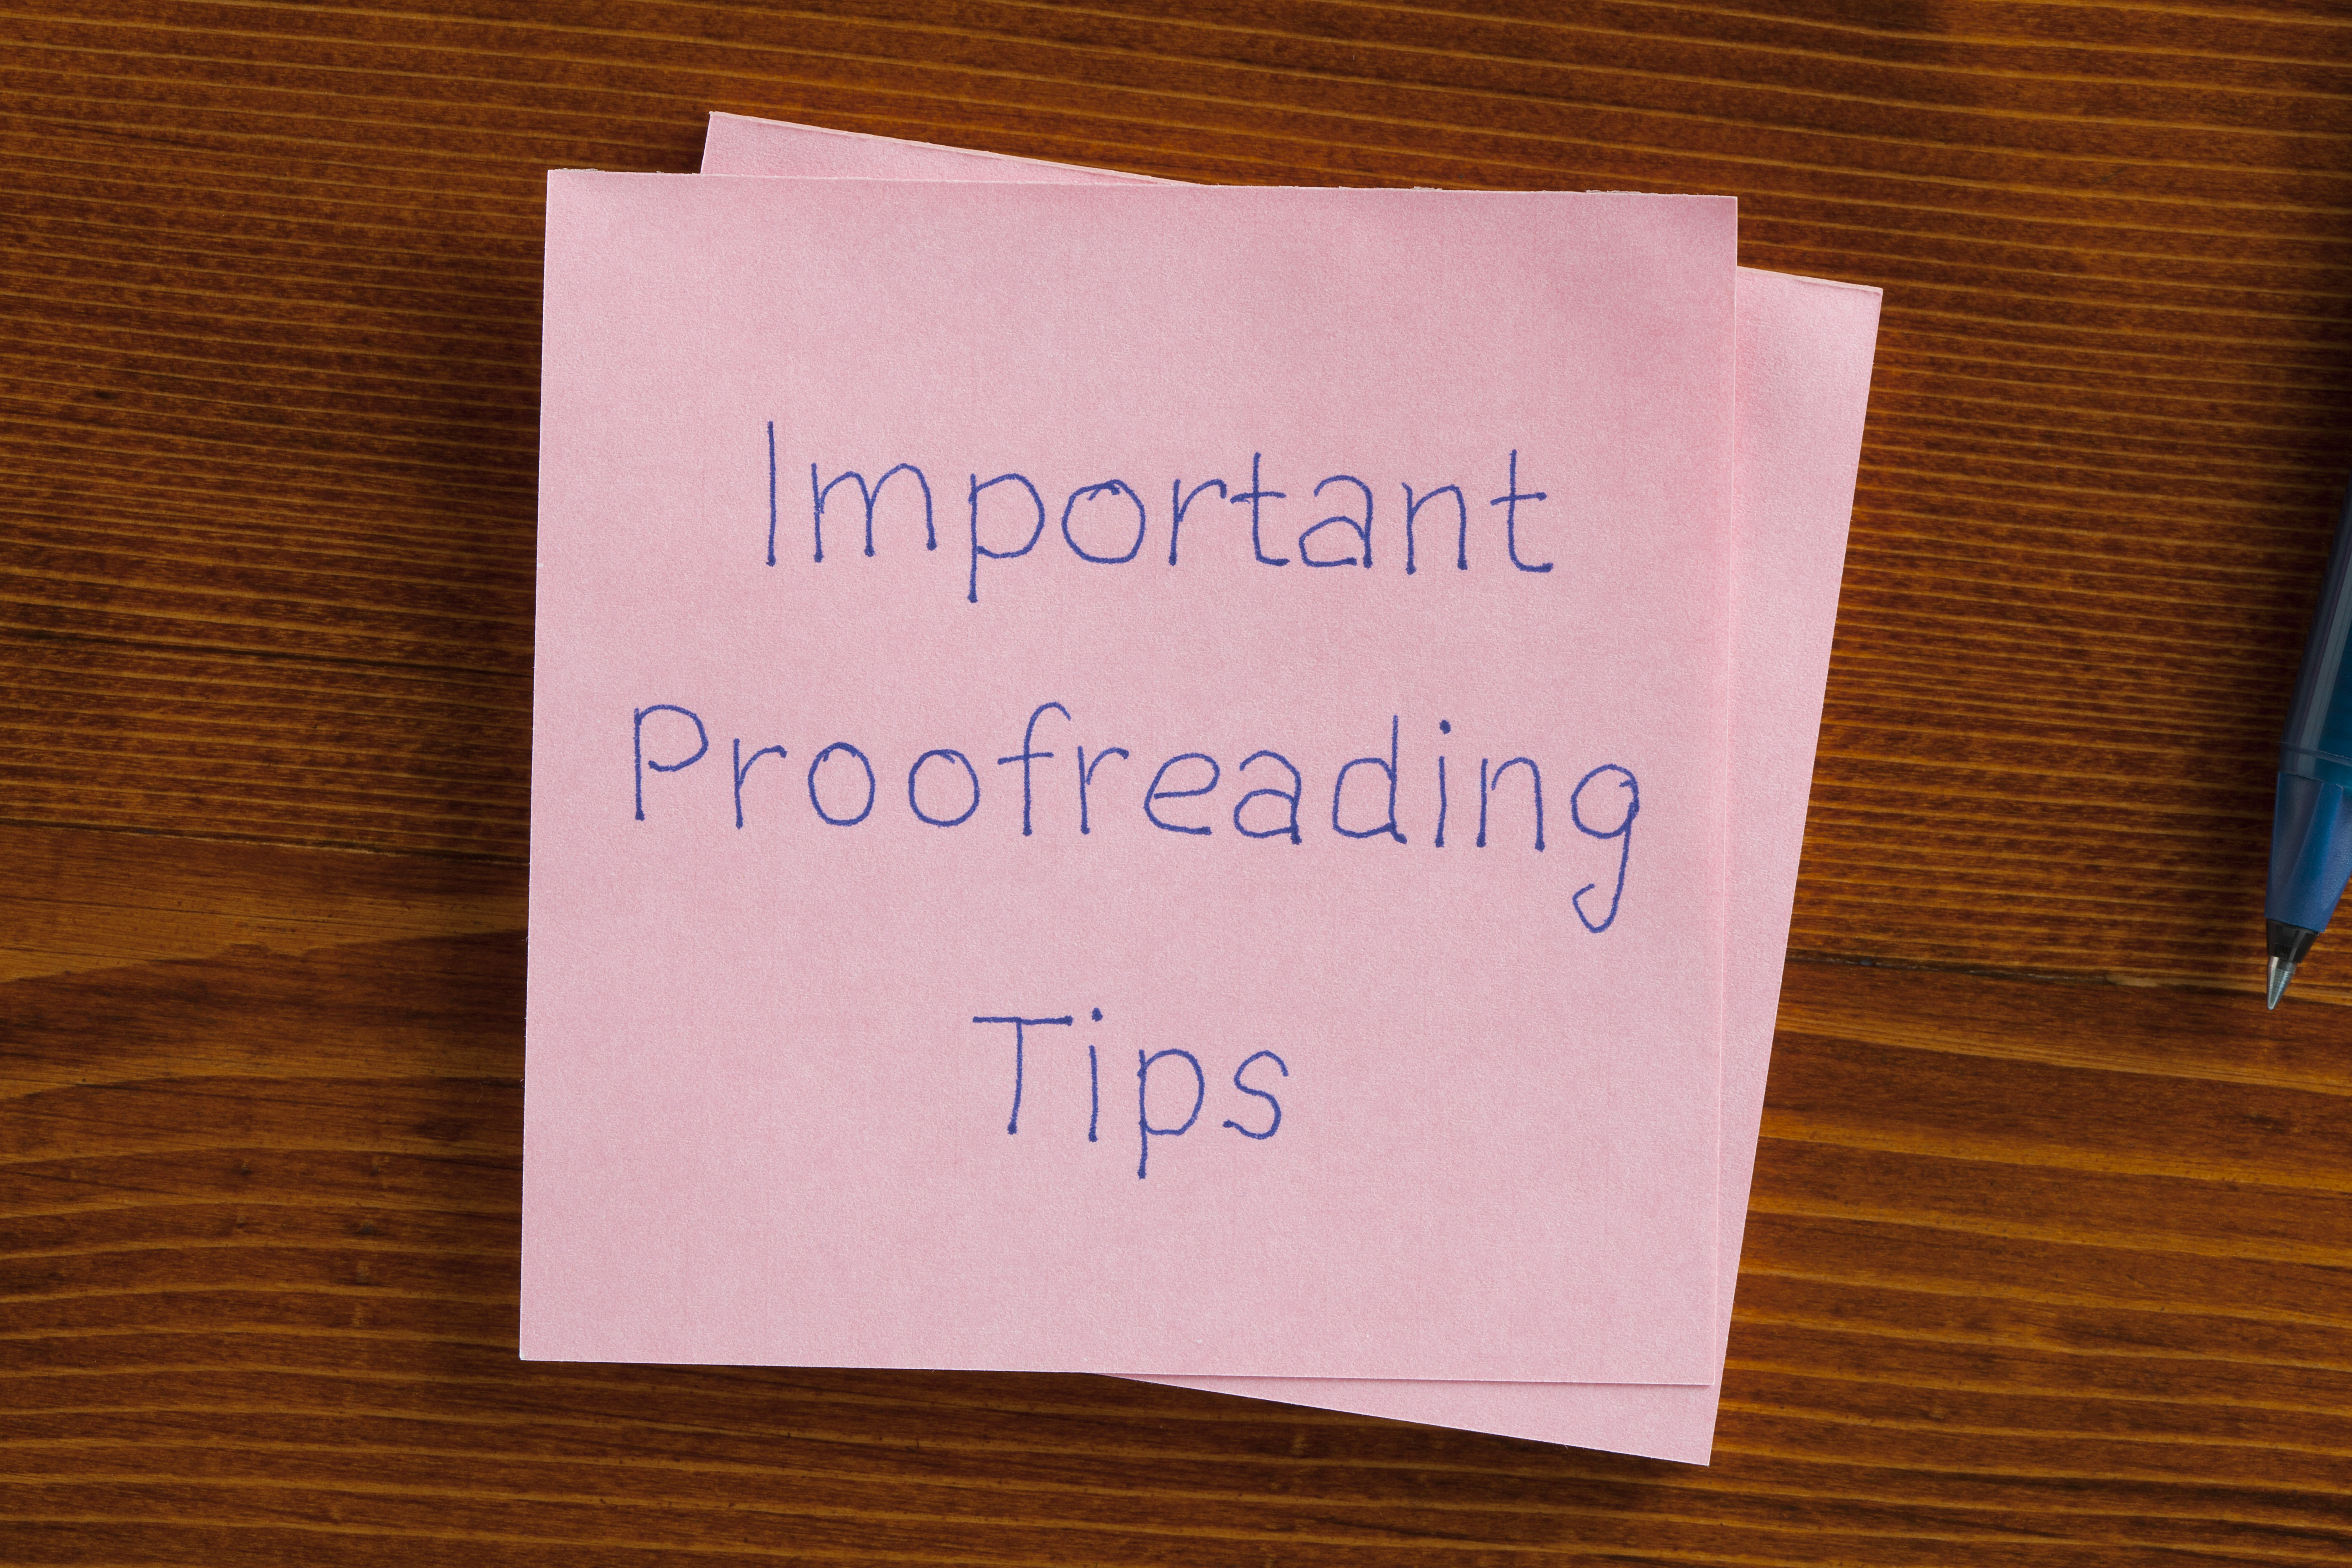 Image of a sticky note with the words Important Proofreading Tips